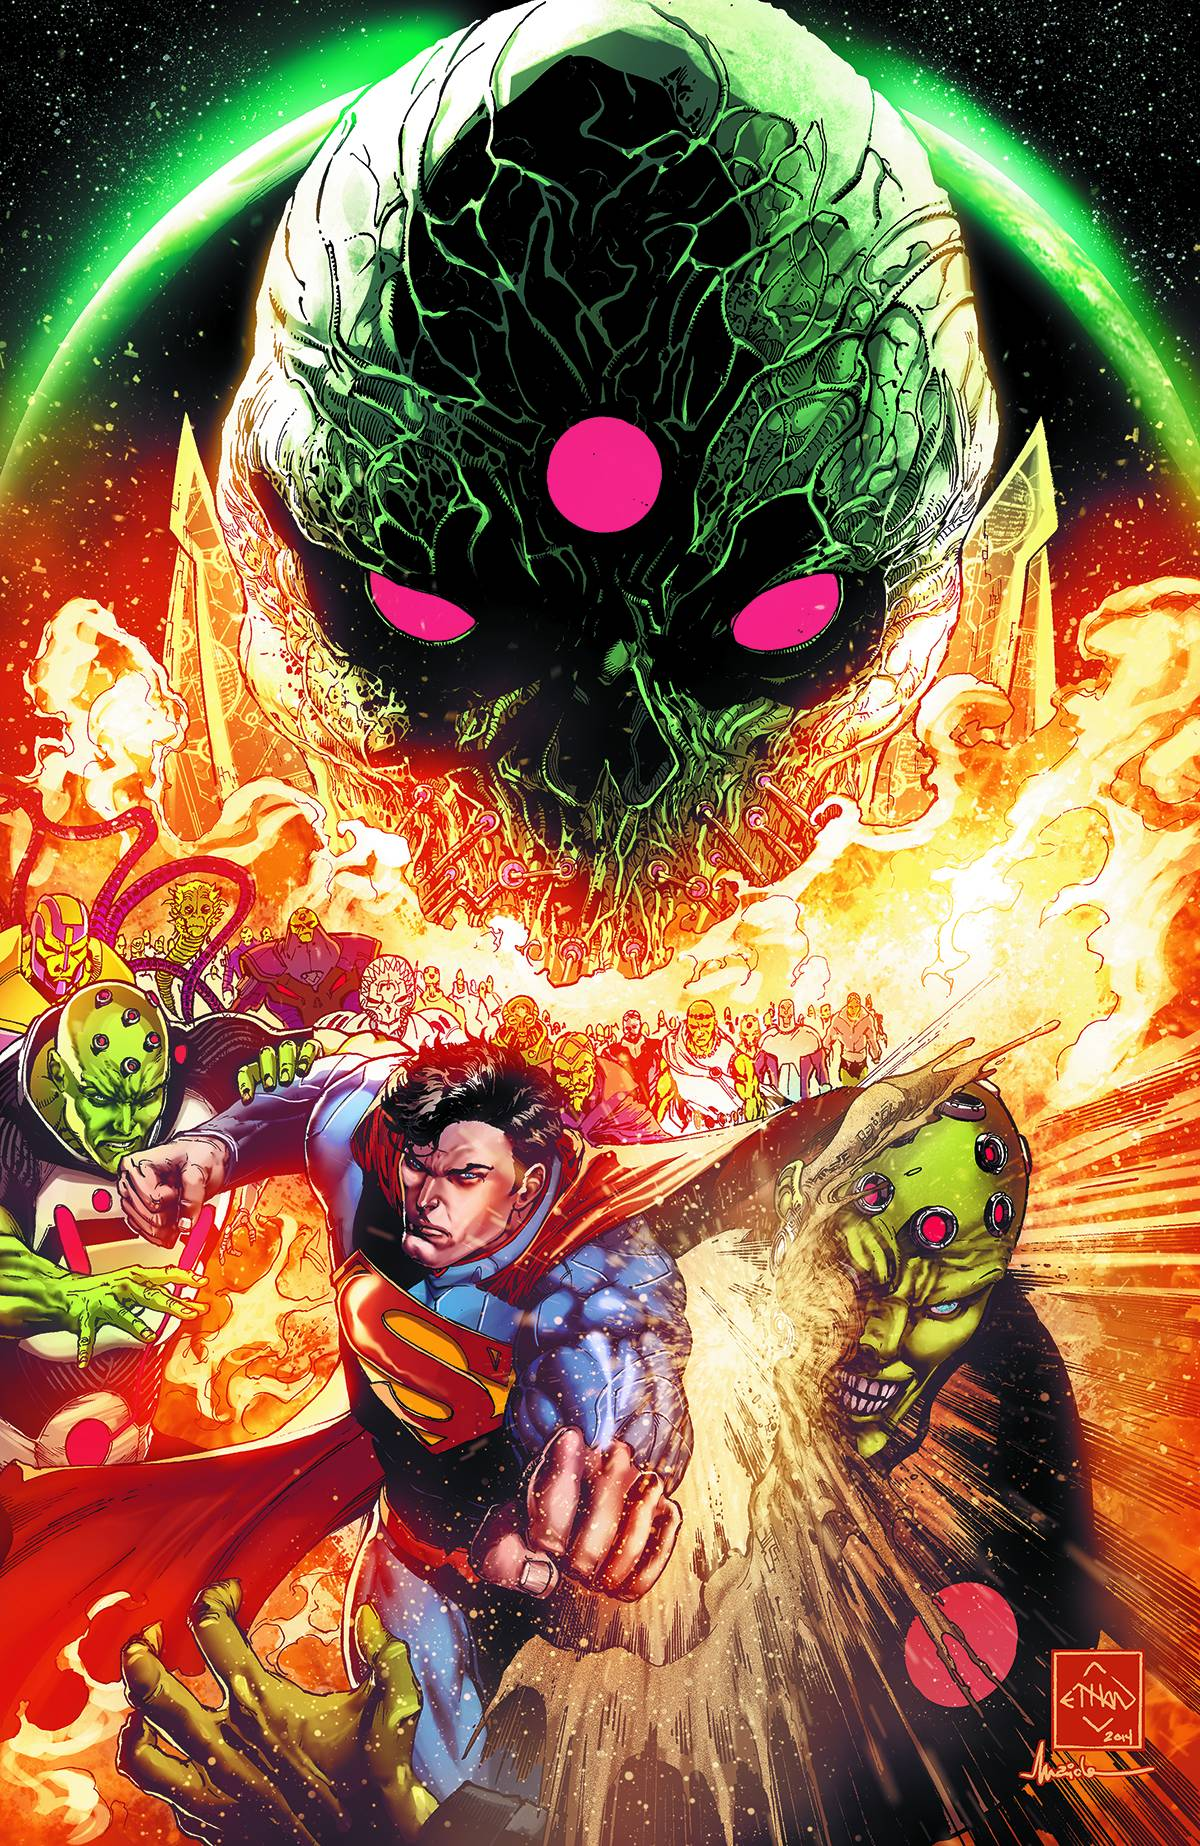 Cover art by Ethan VanSciver